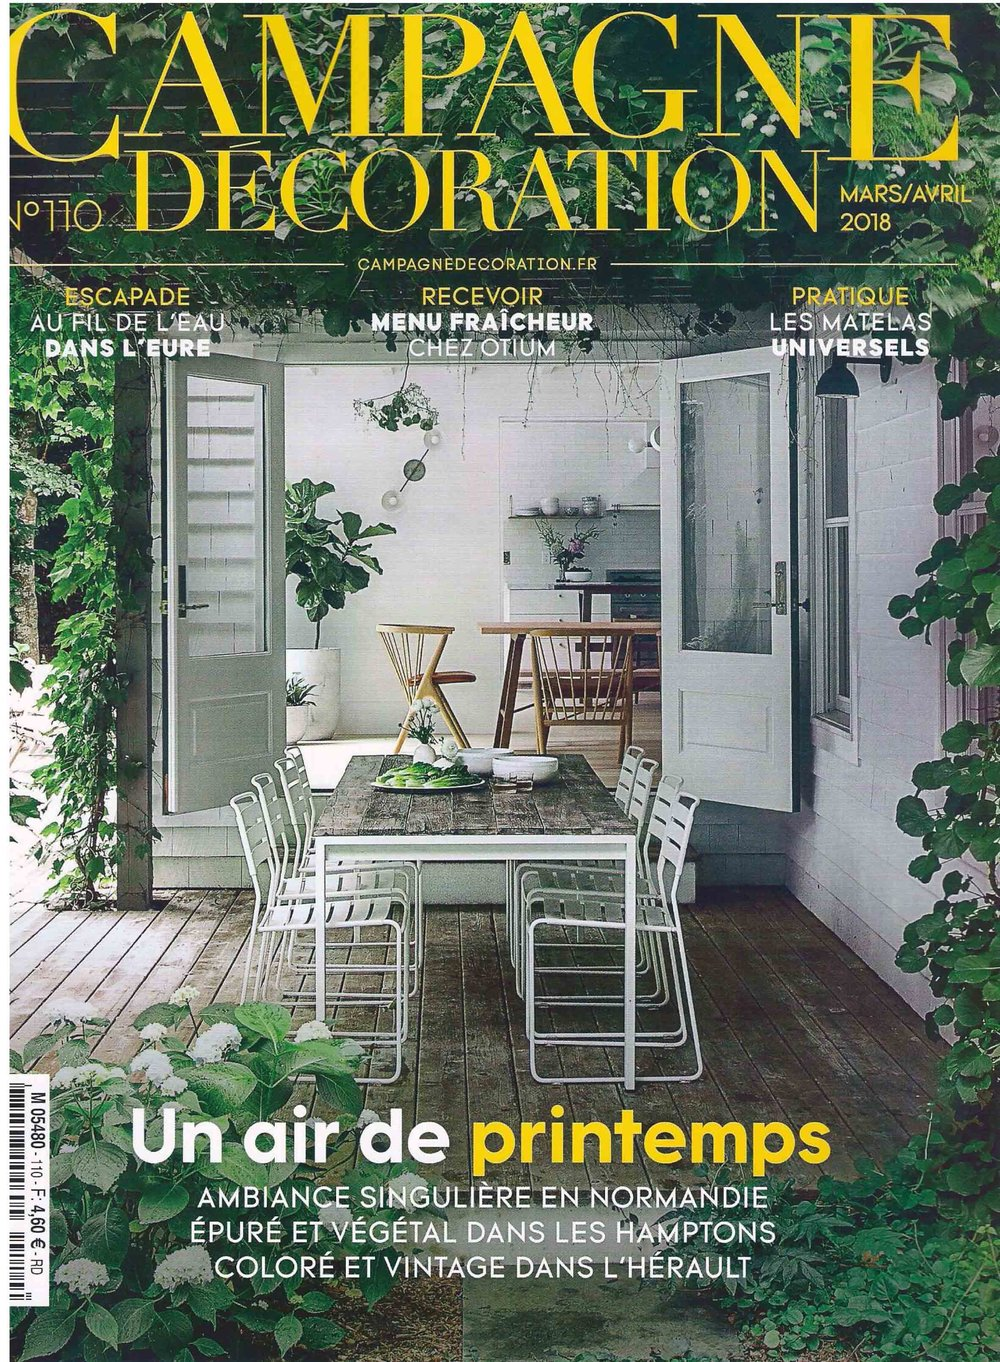 Campagne_Decoration_i_de_Mars_Avril-2018-1.jpg